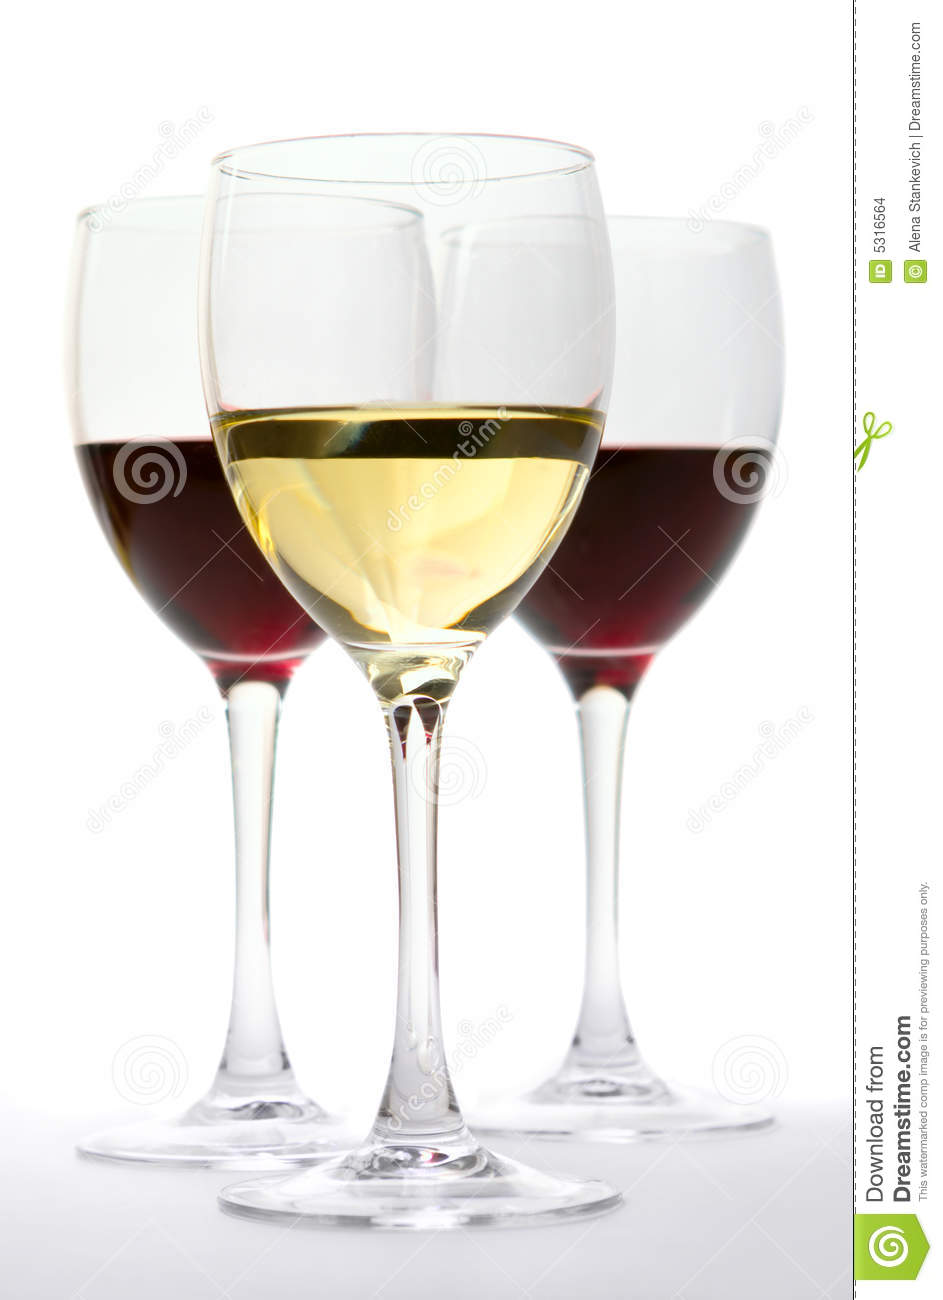 Glasses Of Red And White Wine Stock Images - Image: 5316564